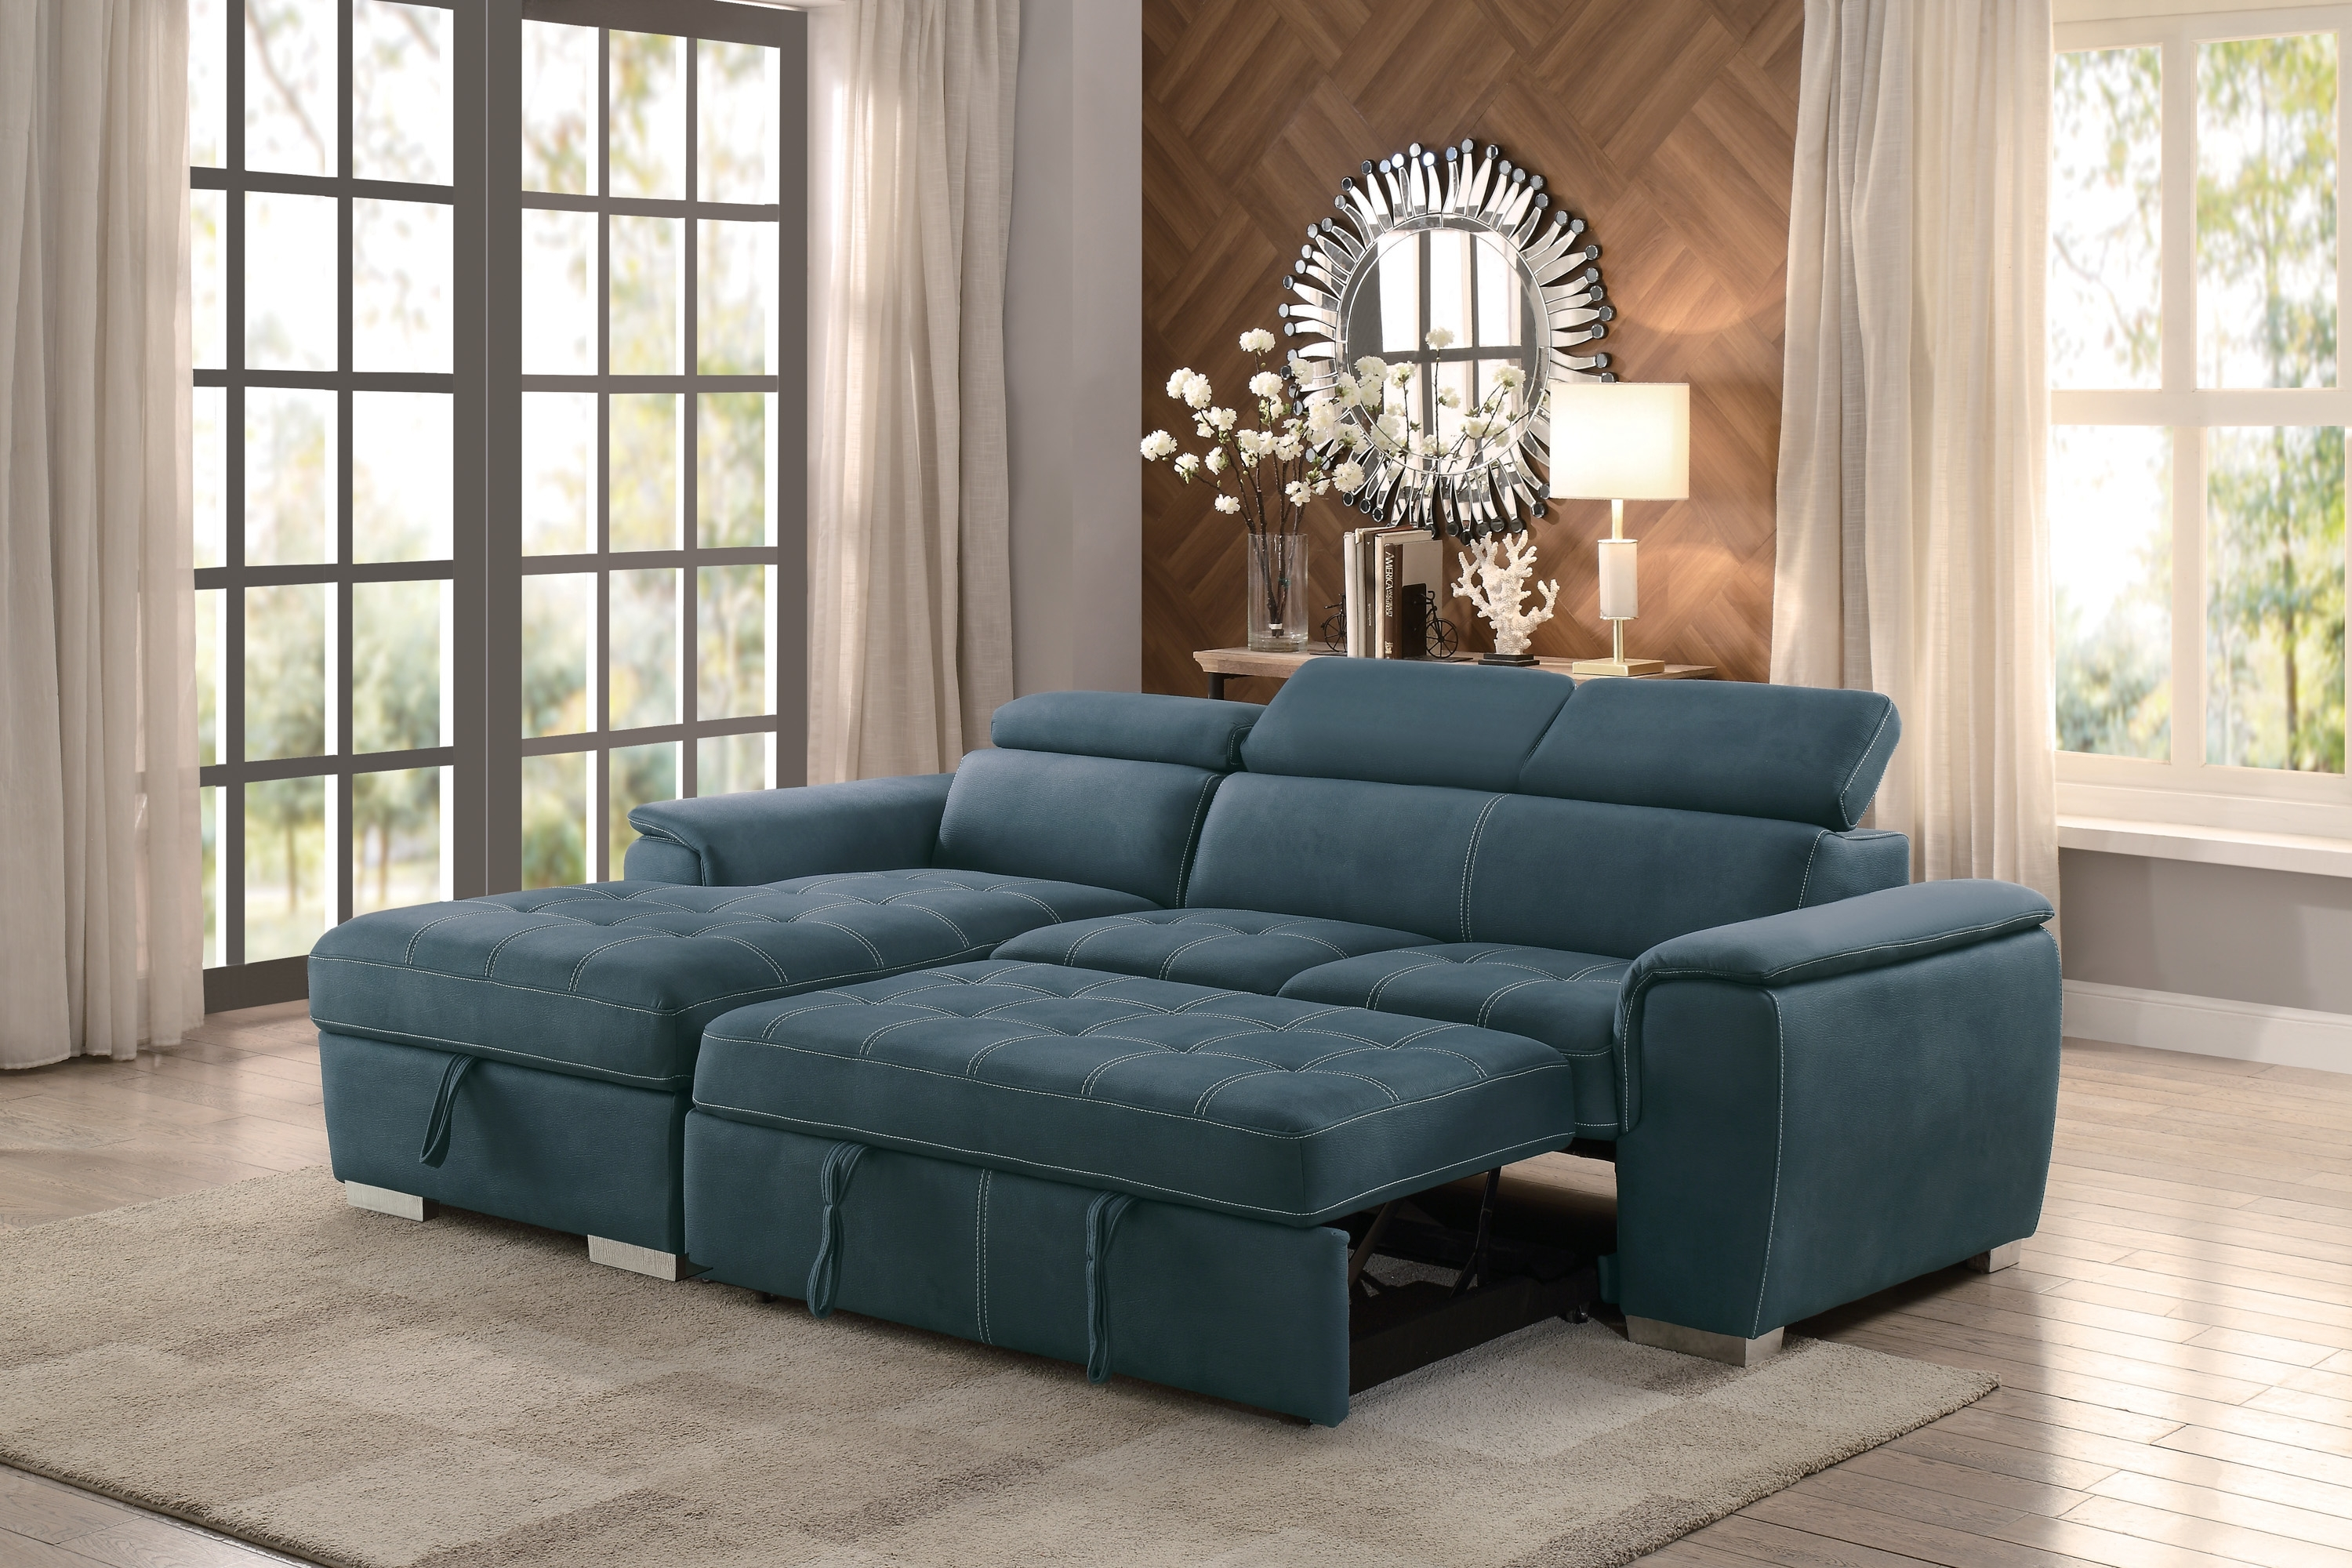 Most Recently Released Adjustable Sectional Sofas With Queen Bed With Regard To Ferriday Modern Style Blue Polyester Fabric Sectional Pull Out Bed (View 13 of 20)